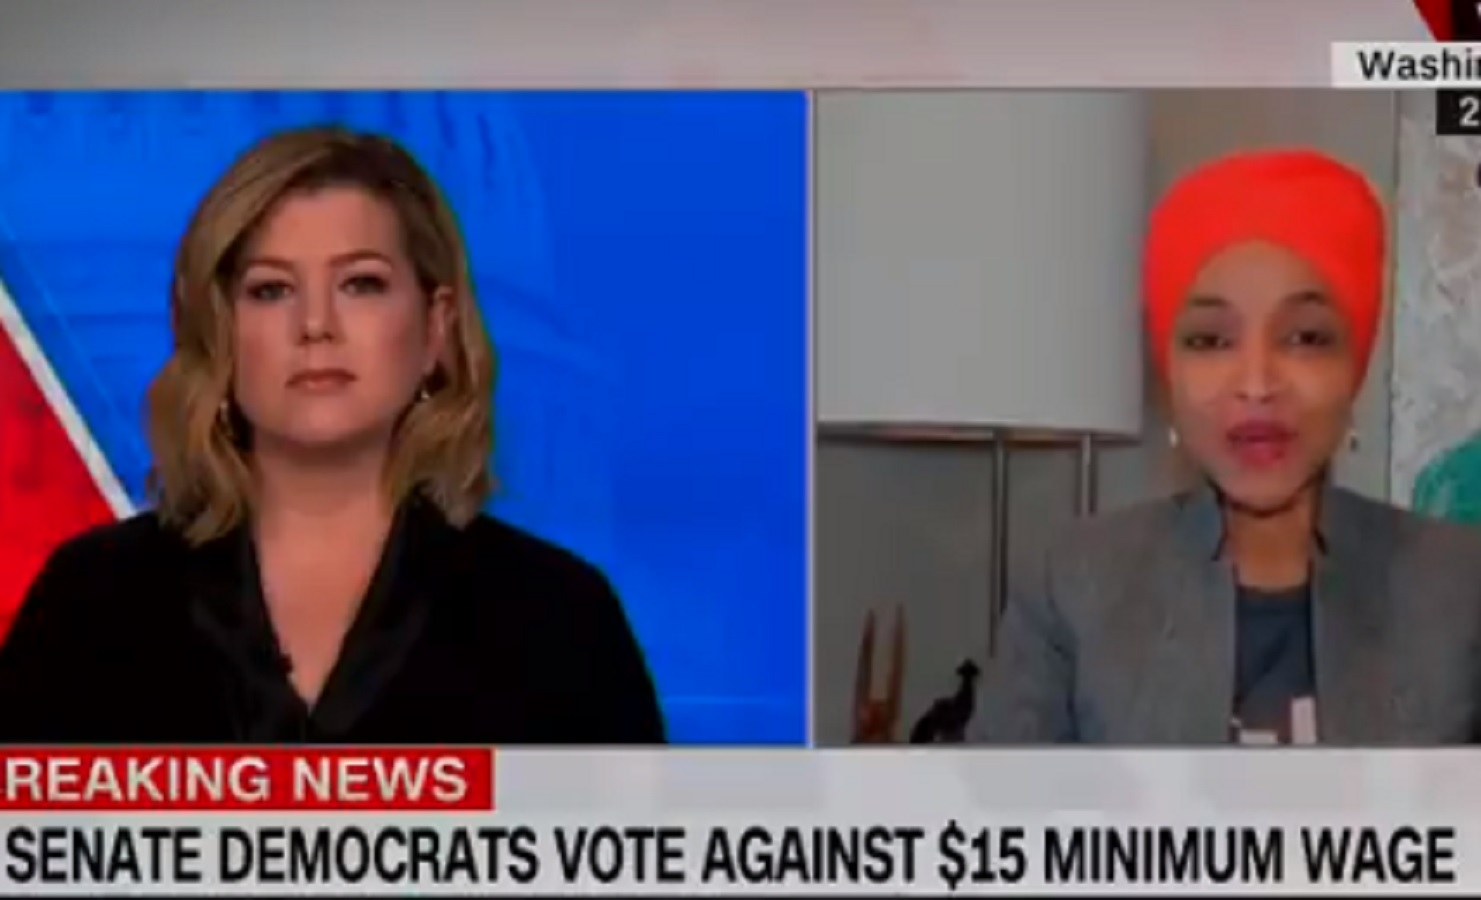 WATCH: Rep. Ilhan Omar Says She's Disappointed That Dems Are 'Sending Money to Less People Than the Trump Administration'